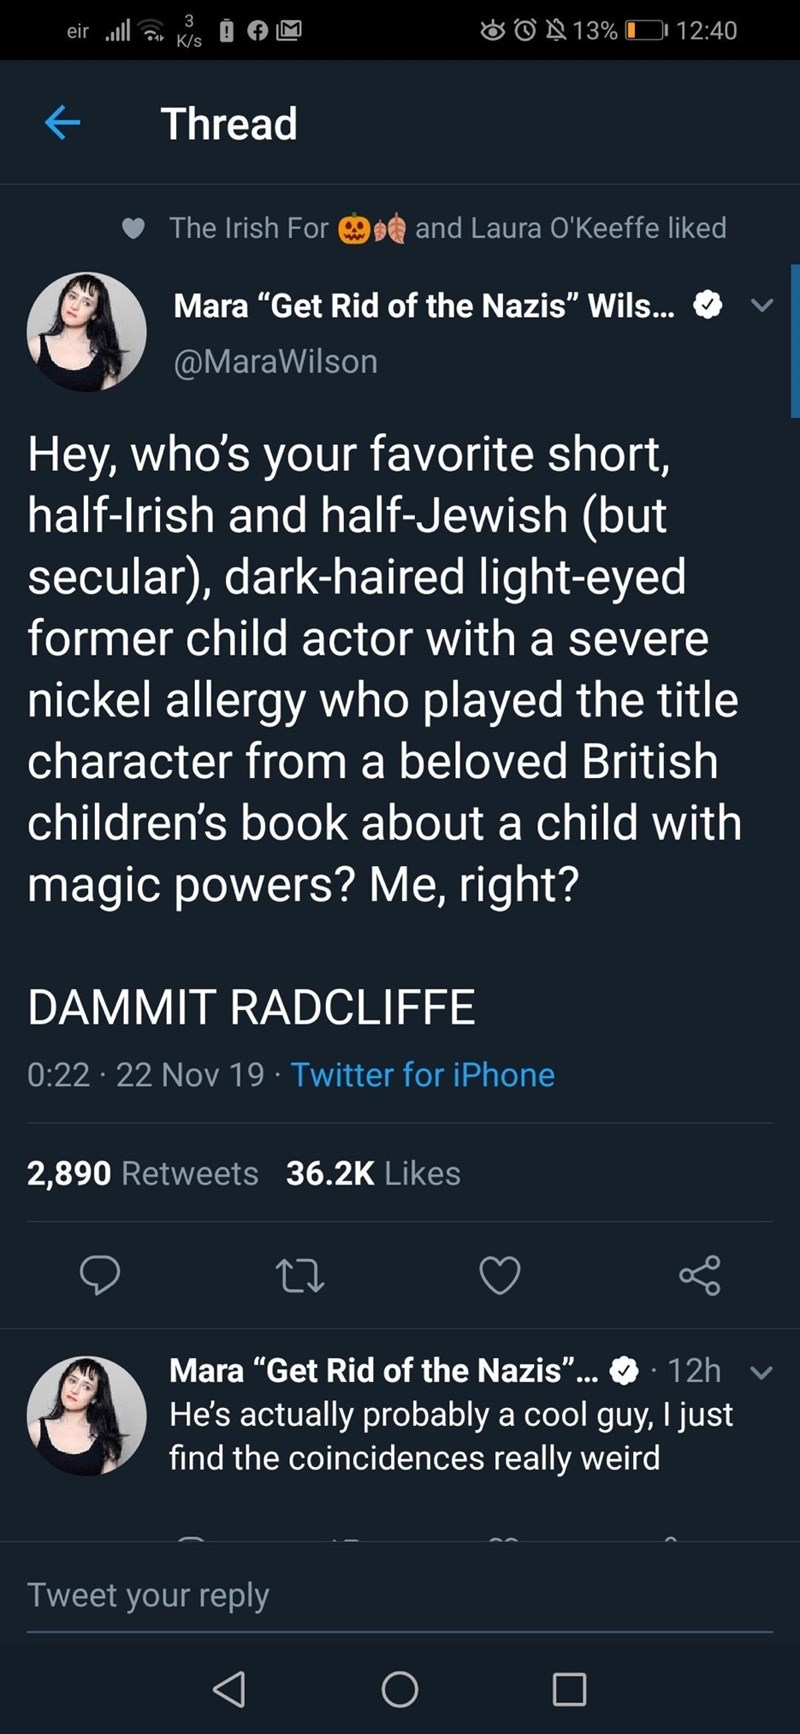 """Text - 3 eir ll K/s &O13% DD 12:40 Thread and Laura O' Keeffe liked The Irish For Mara """"Get Rid of the Nazis"""" Wils... @MaraWilson Hey, who's your favorite short, half-lrish and half-Jewish (but secular), dark-haired light-eyed former child actor with a severe nickel allergy who played the title character from a beloved British children's book about a child with magic powers? Me, right? DAMMIT RADCLIFFE 0:22 22 Nov 19 Twitter for iPhone 2,890 Retweets 36.2K Likes Mara """"Get Rid of the Nazis""""... 12"""